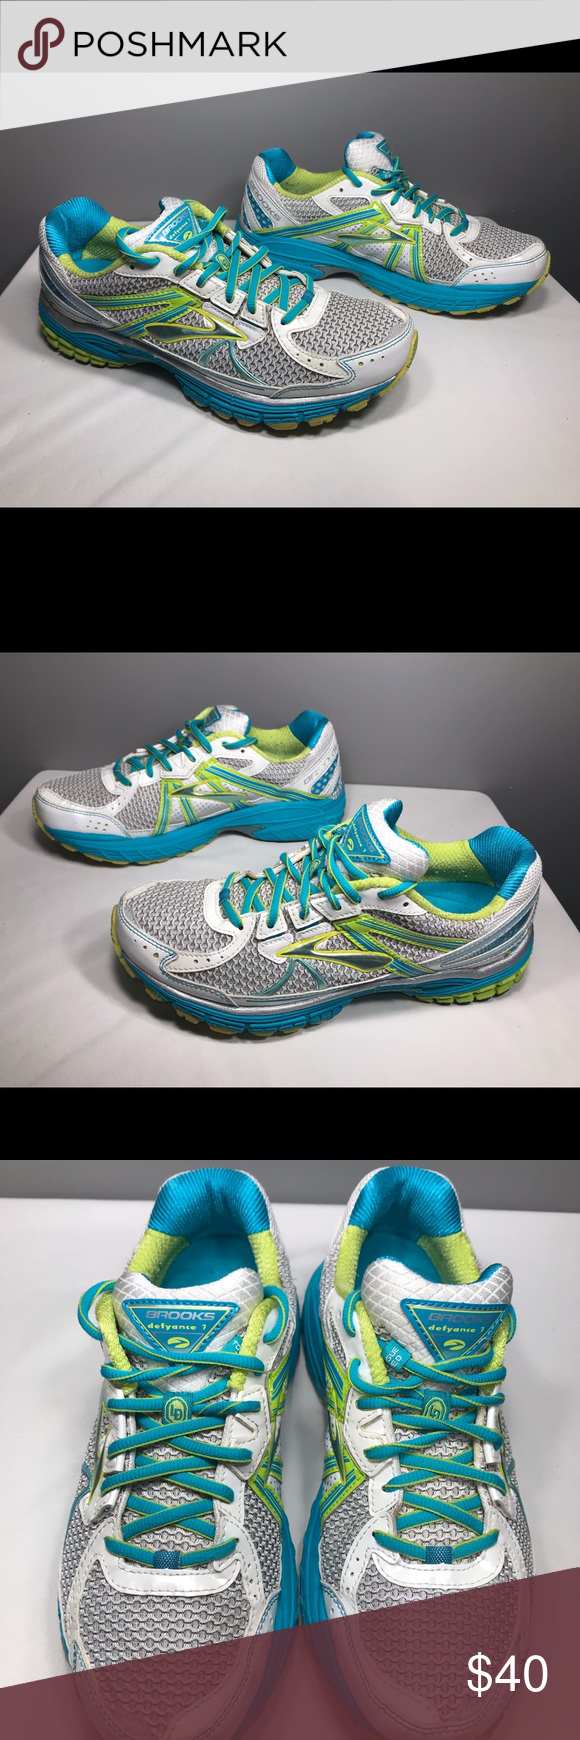 c6590bf5752a1 Brooks defyance 7 women s running shoes. Size 9.5 Women s running shoes  size 9.5. Smoke